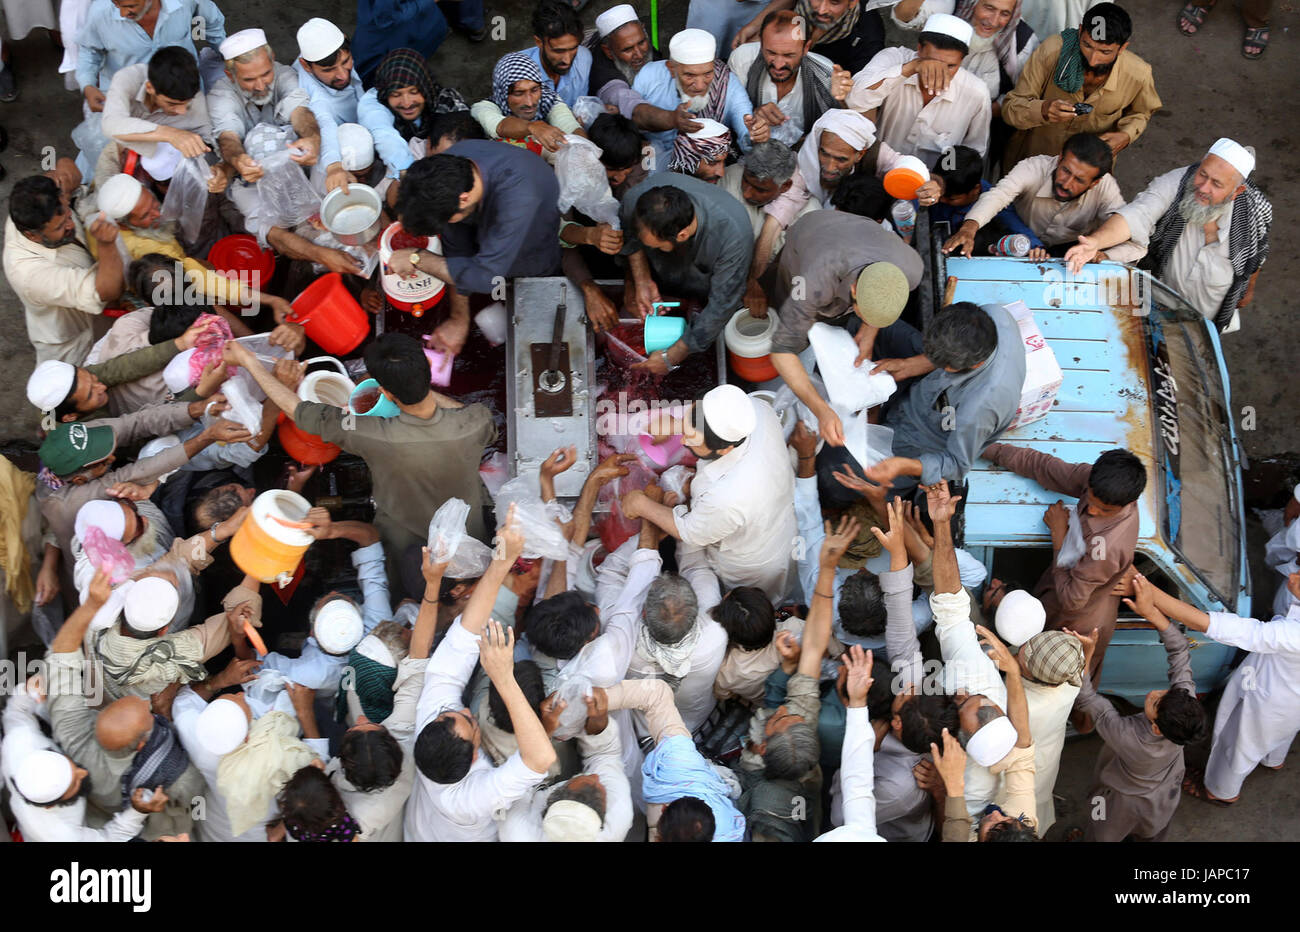 Watermelon juice is being distributing among Muslims as almsgiving by philanthropist during Holy Month of Ramzan Stock Photo